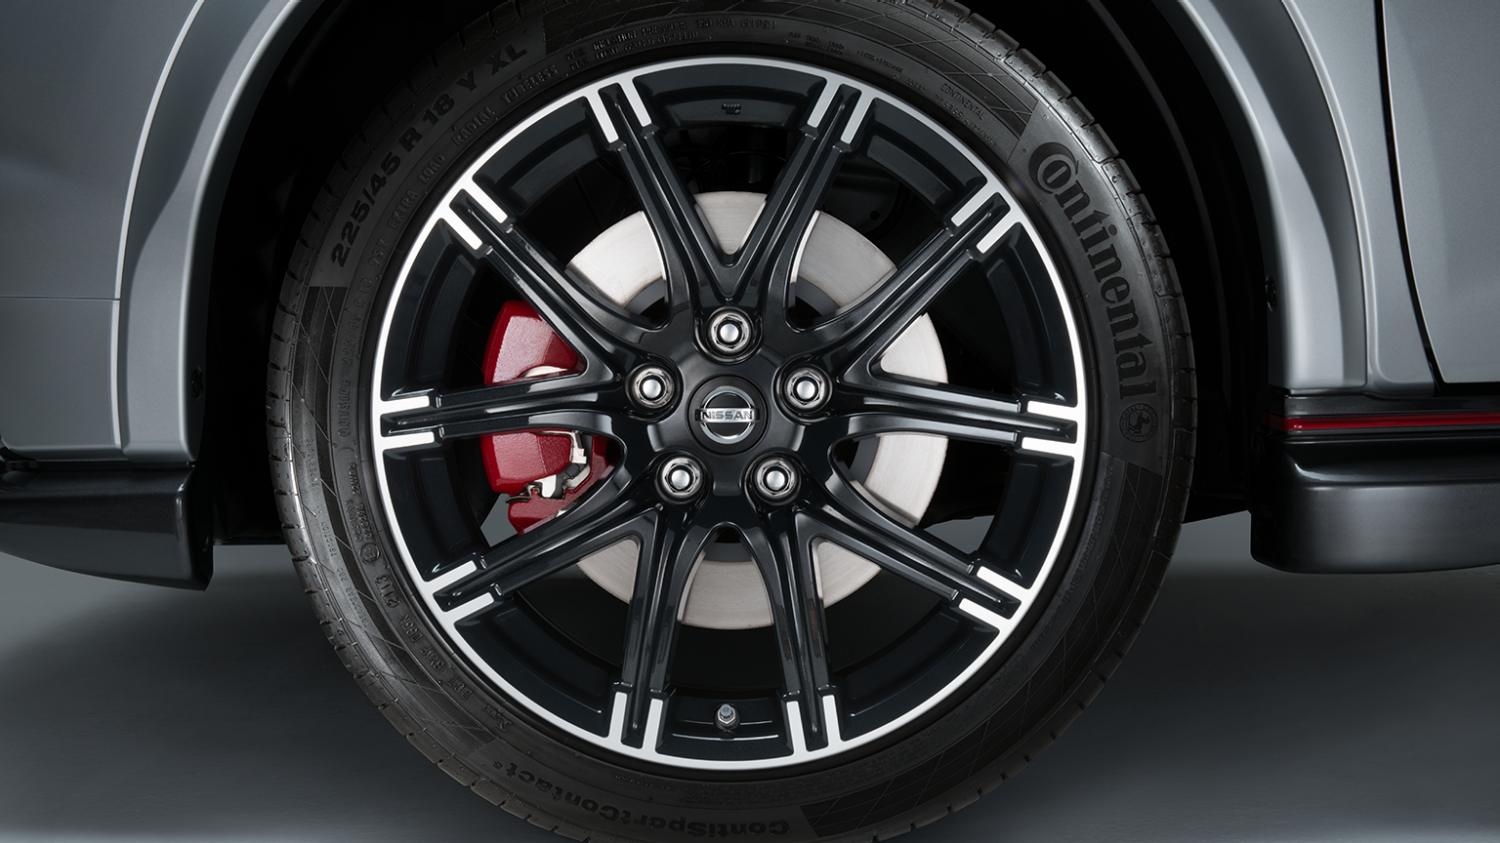 NISMO | Nissan Juke | High performance wheels and tyres